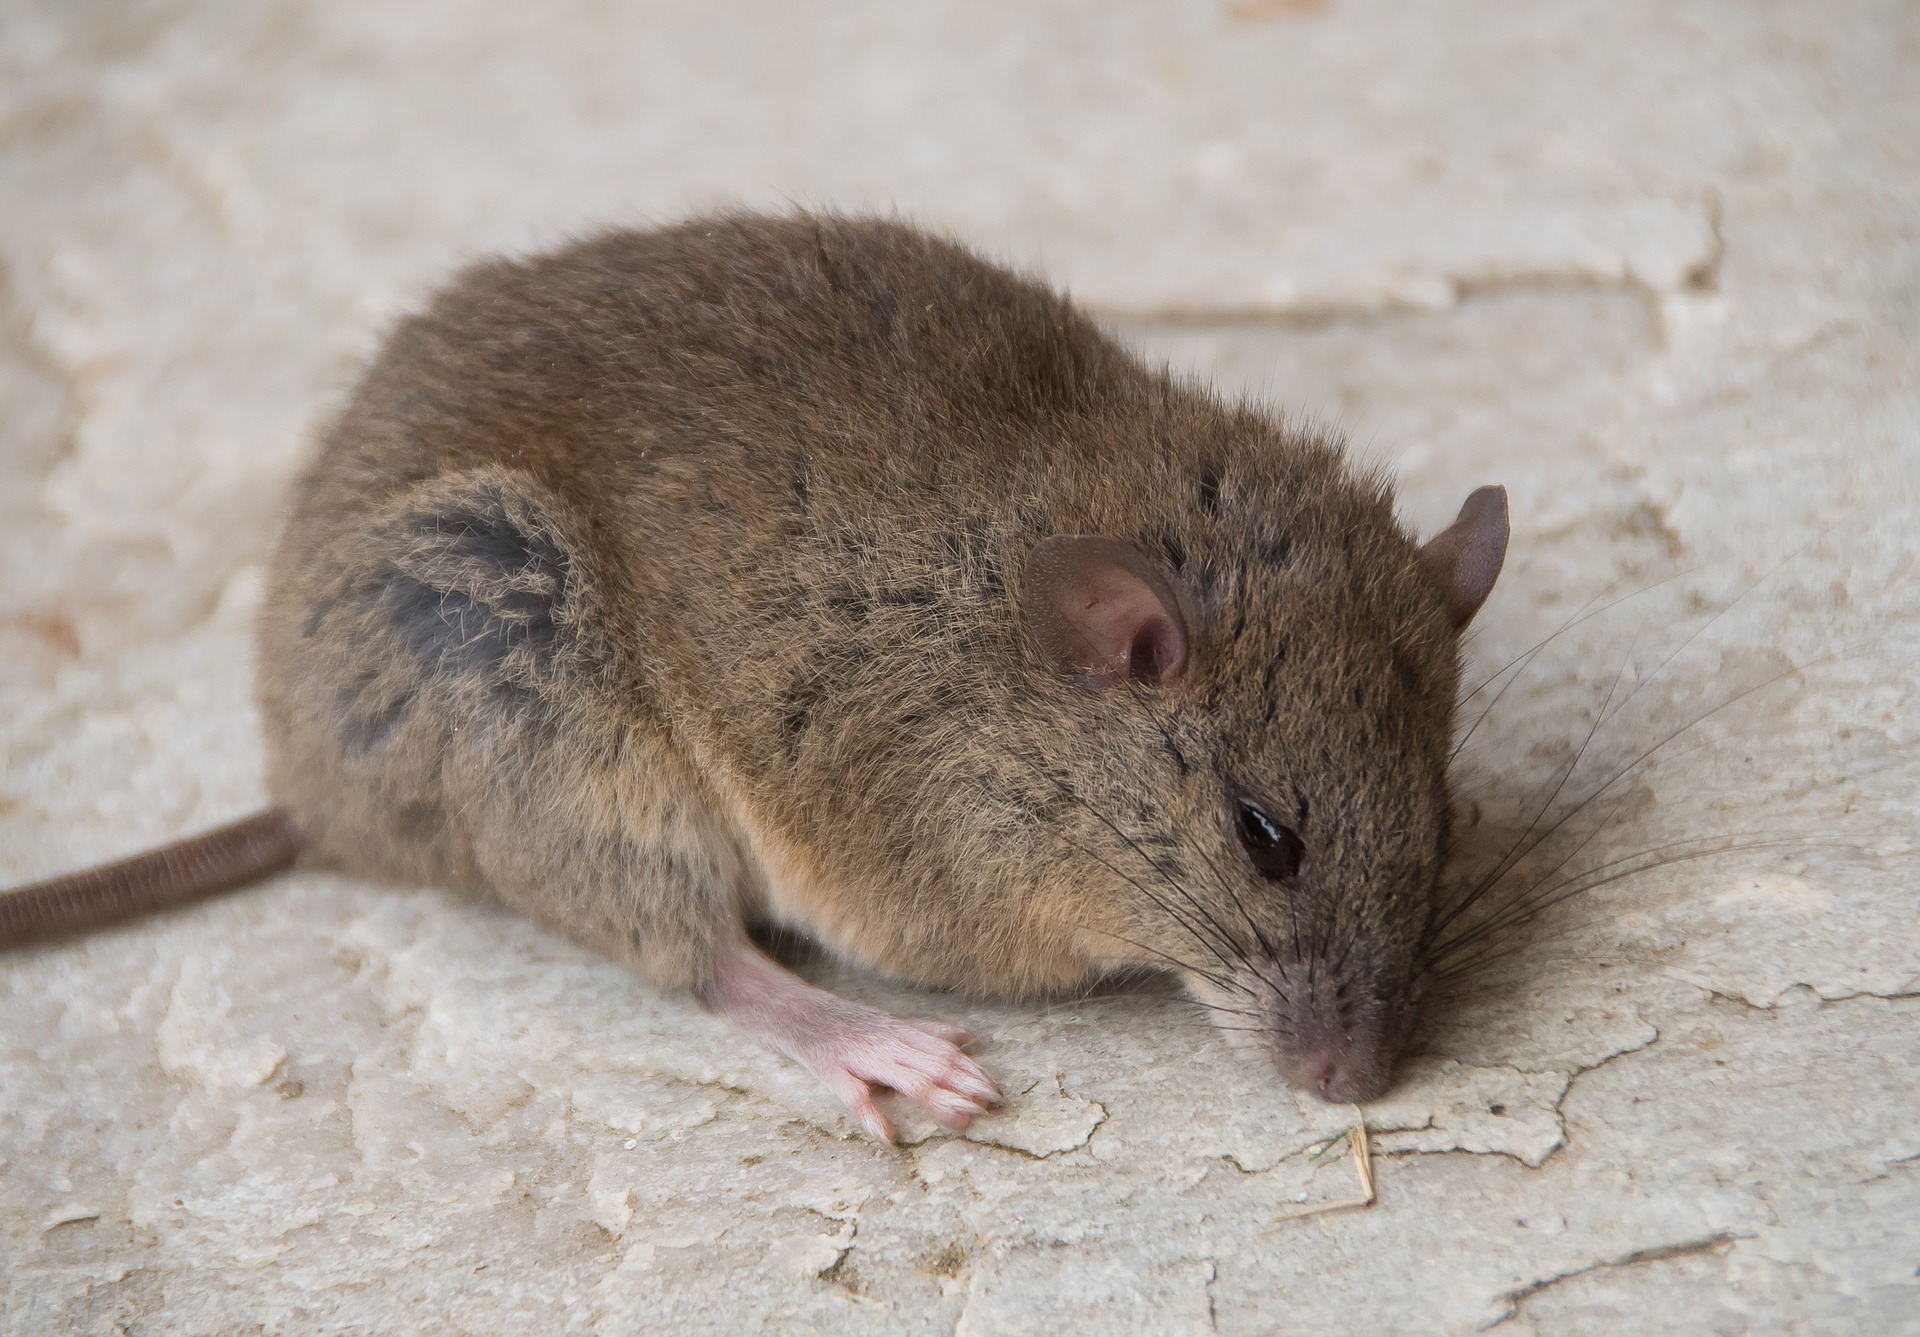 Rodent control considers protected species like this grassland melomys.